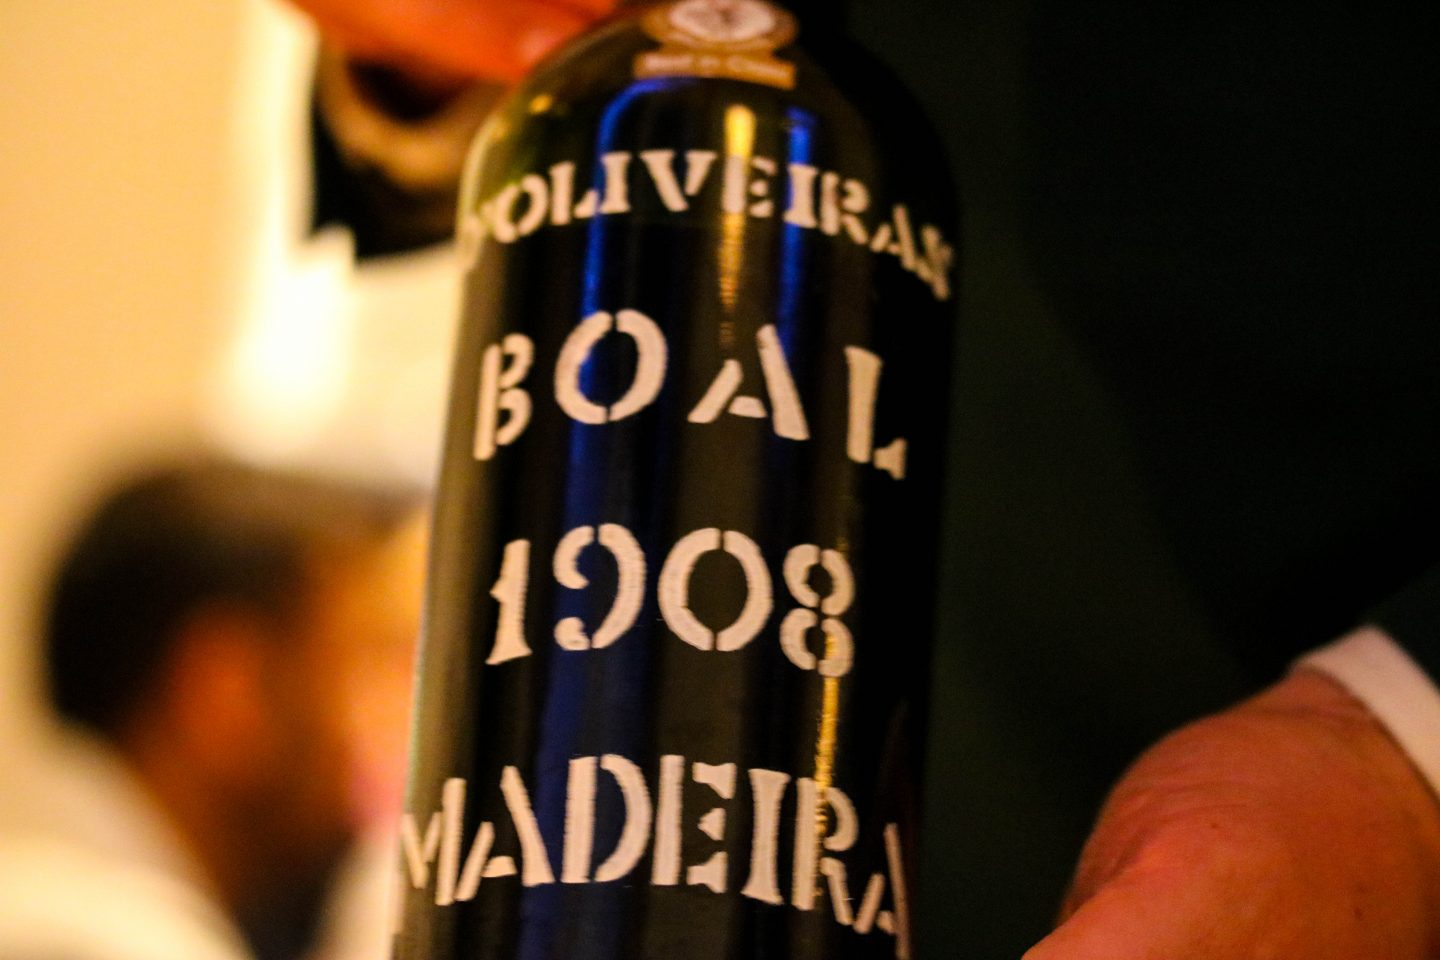 Bottle of Madeira from 1908 _ Clove Club _ Lifestyle Enthusiast Blog Review